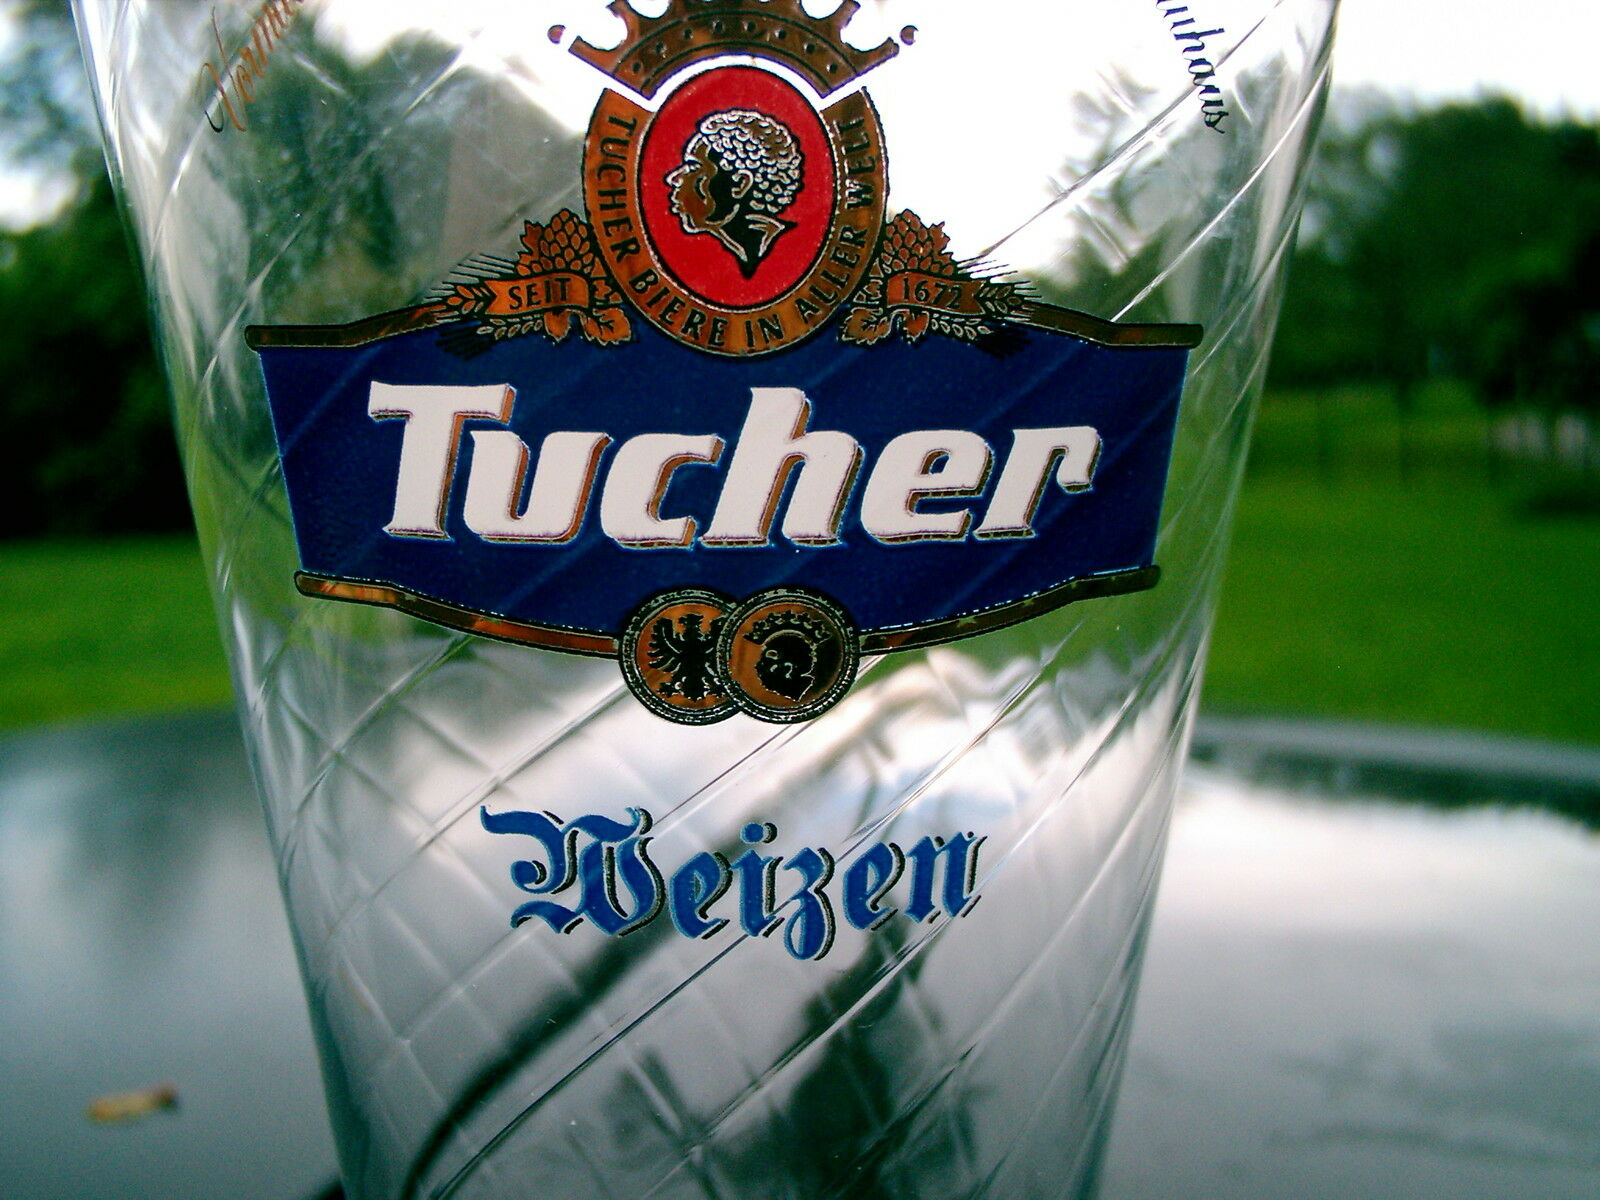 tucher weizen bier crown logo big 0 5 liter german beer glass nice souvenir picclick. Black Bedroom Furniture Sets. Home Design Ideas